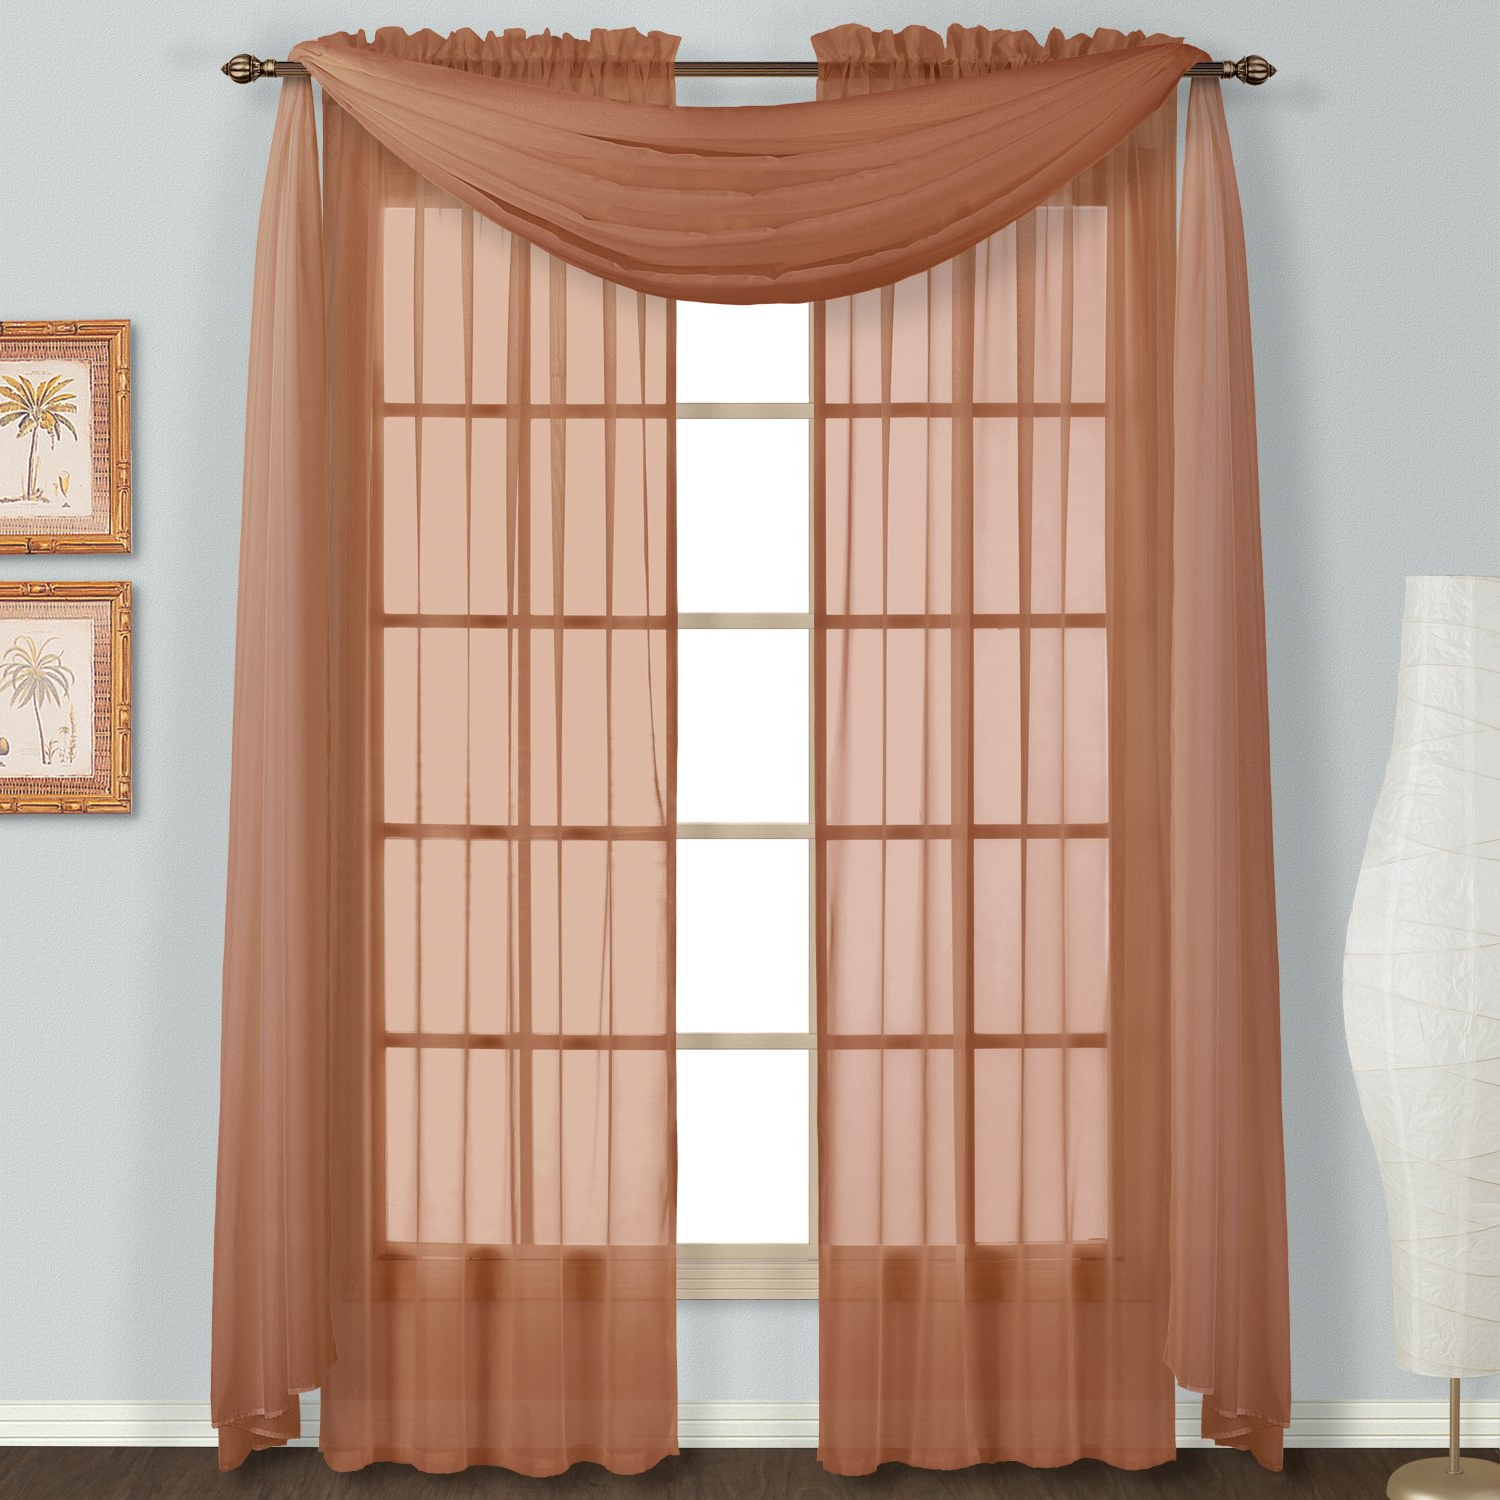 """Latest Luxury Collection Monte Carlo Sheer Curtain Panel Pairs Inside United Curtain Monte Carlo Sheer 59"""" Width Window Curtain Panels (set Of Two 59"""" X 63"""" Curtains) – Color Spice (pack Of 2) (View 8 of 20)"""